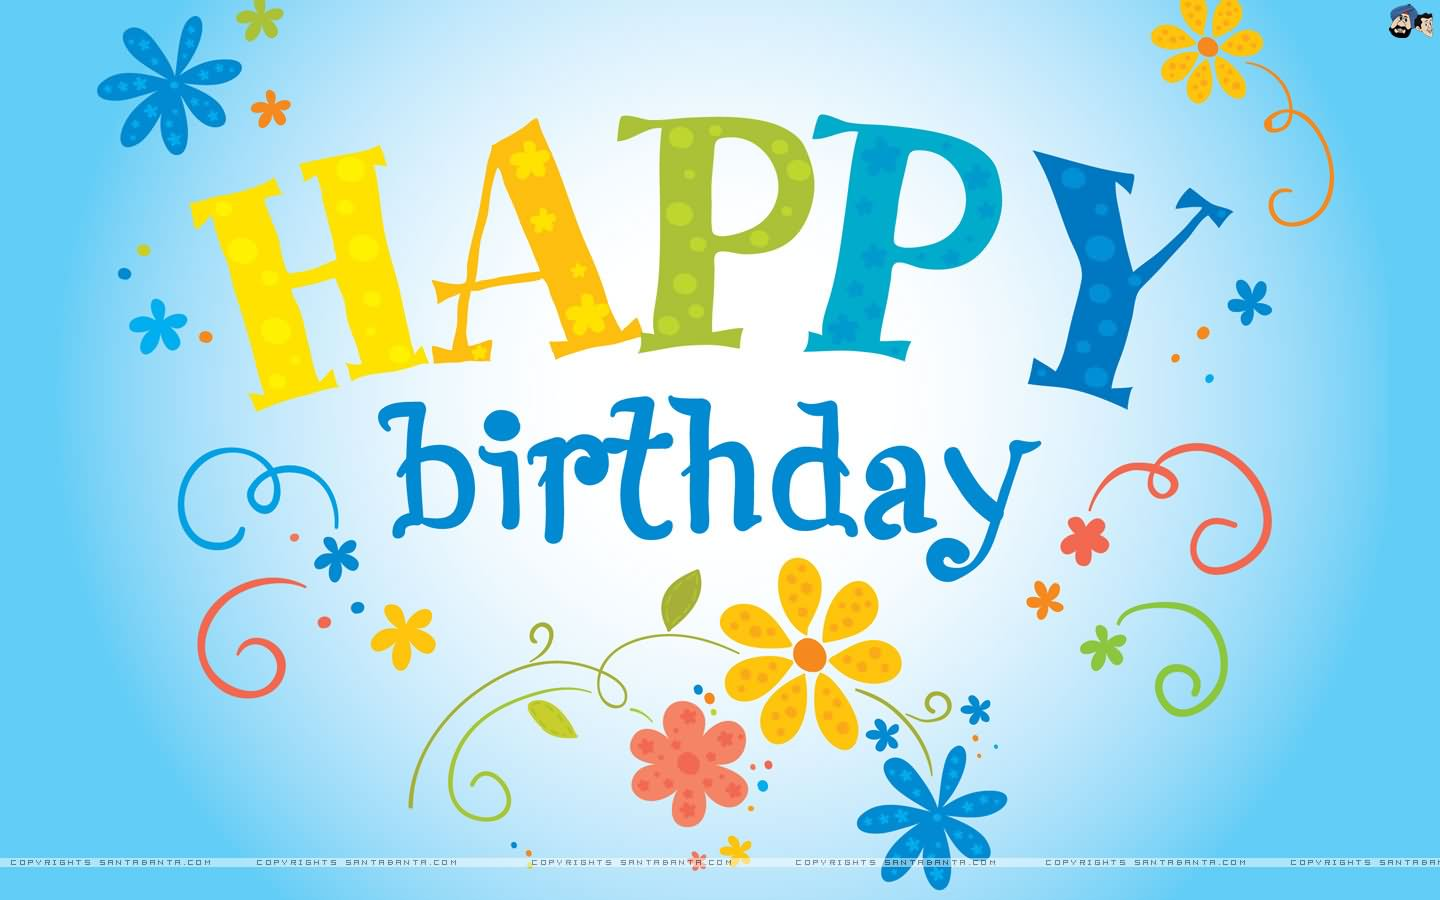 happy birthday birthday card ; happy-birthday-greeting-card-for-you-graphic-for-share-on-myspace